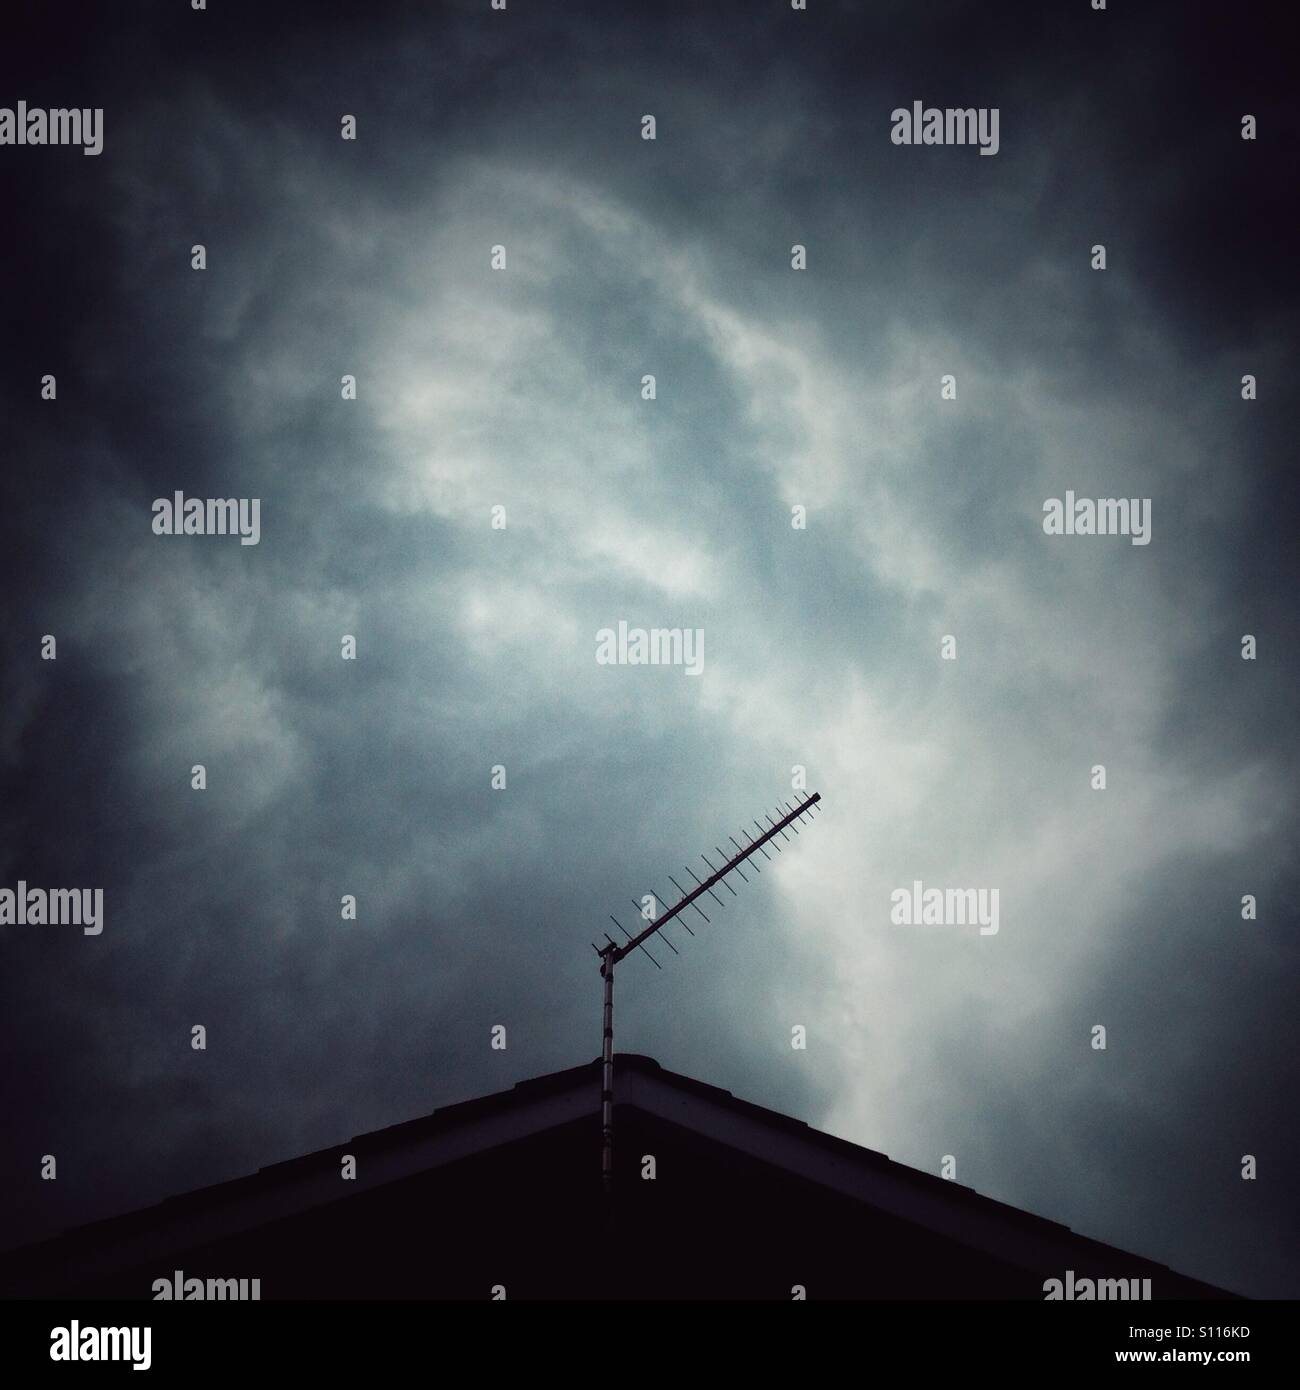 Dark clouds over a roof top of a house with a TV aerial. - Stock Image